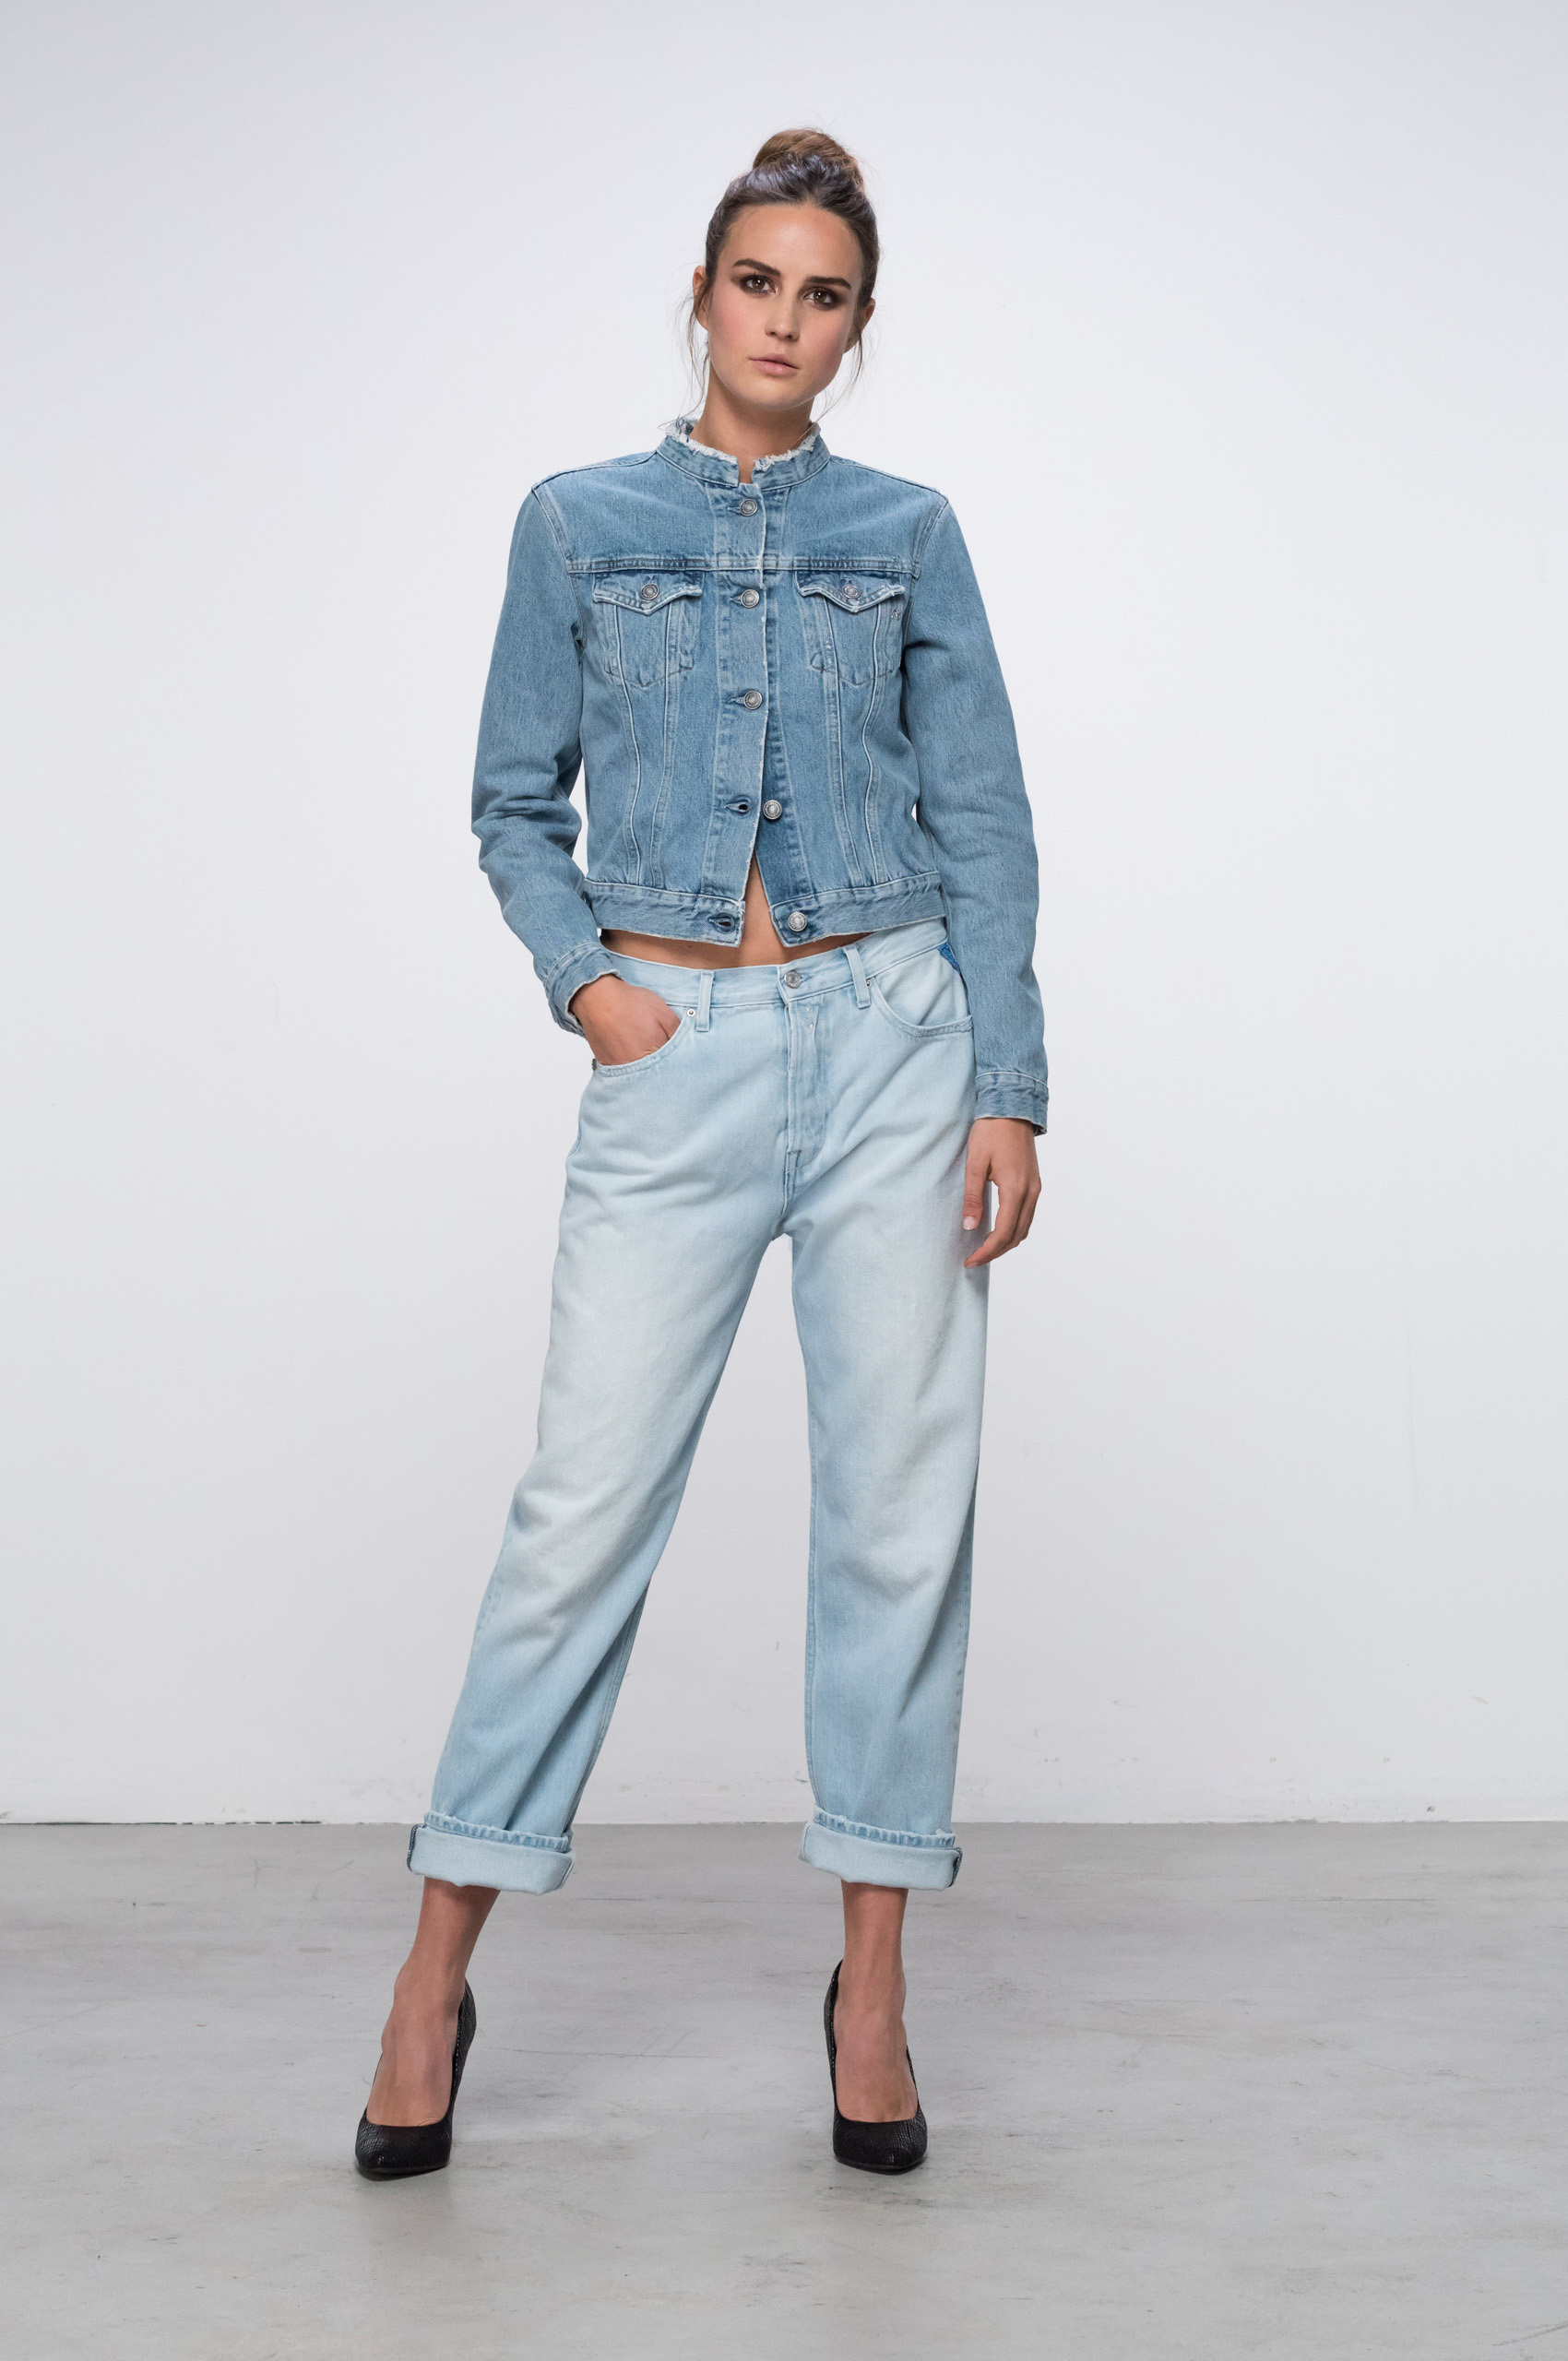 Relaxed jeans fit guide women